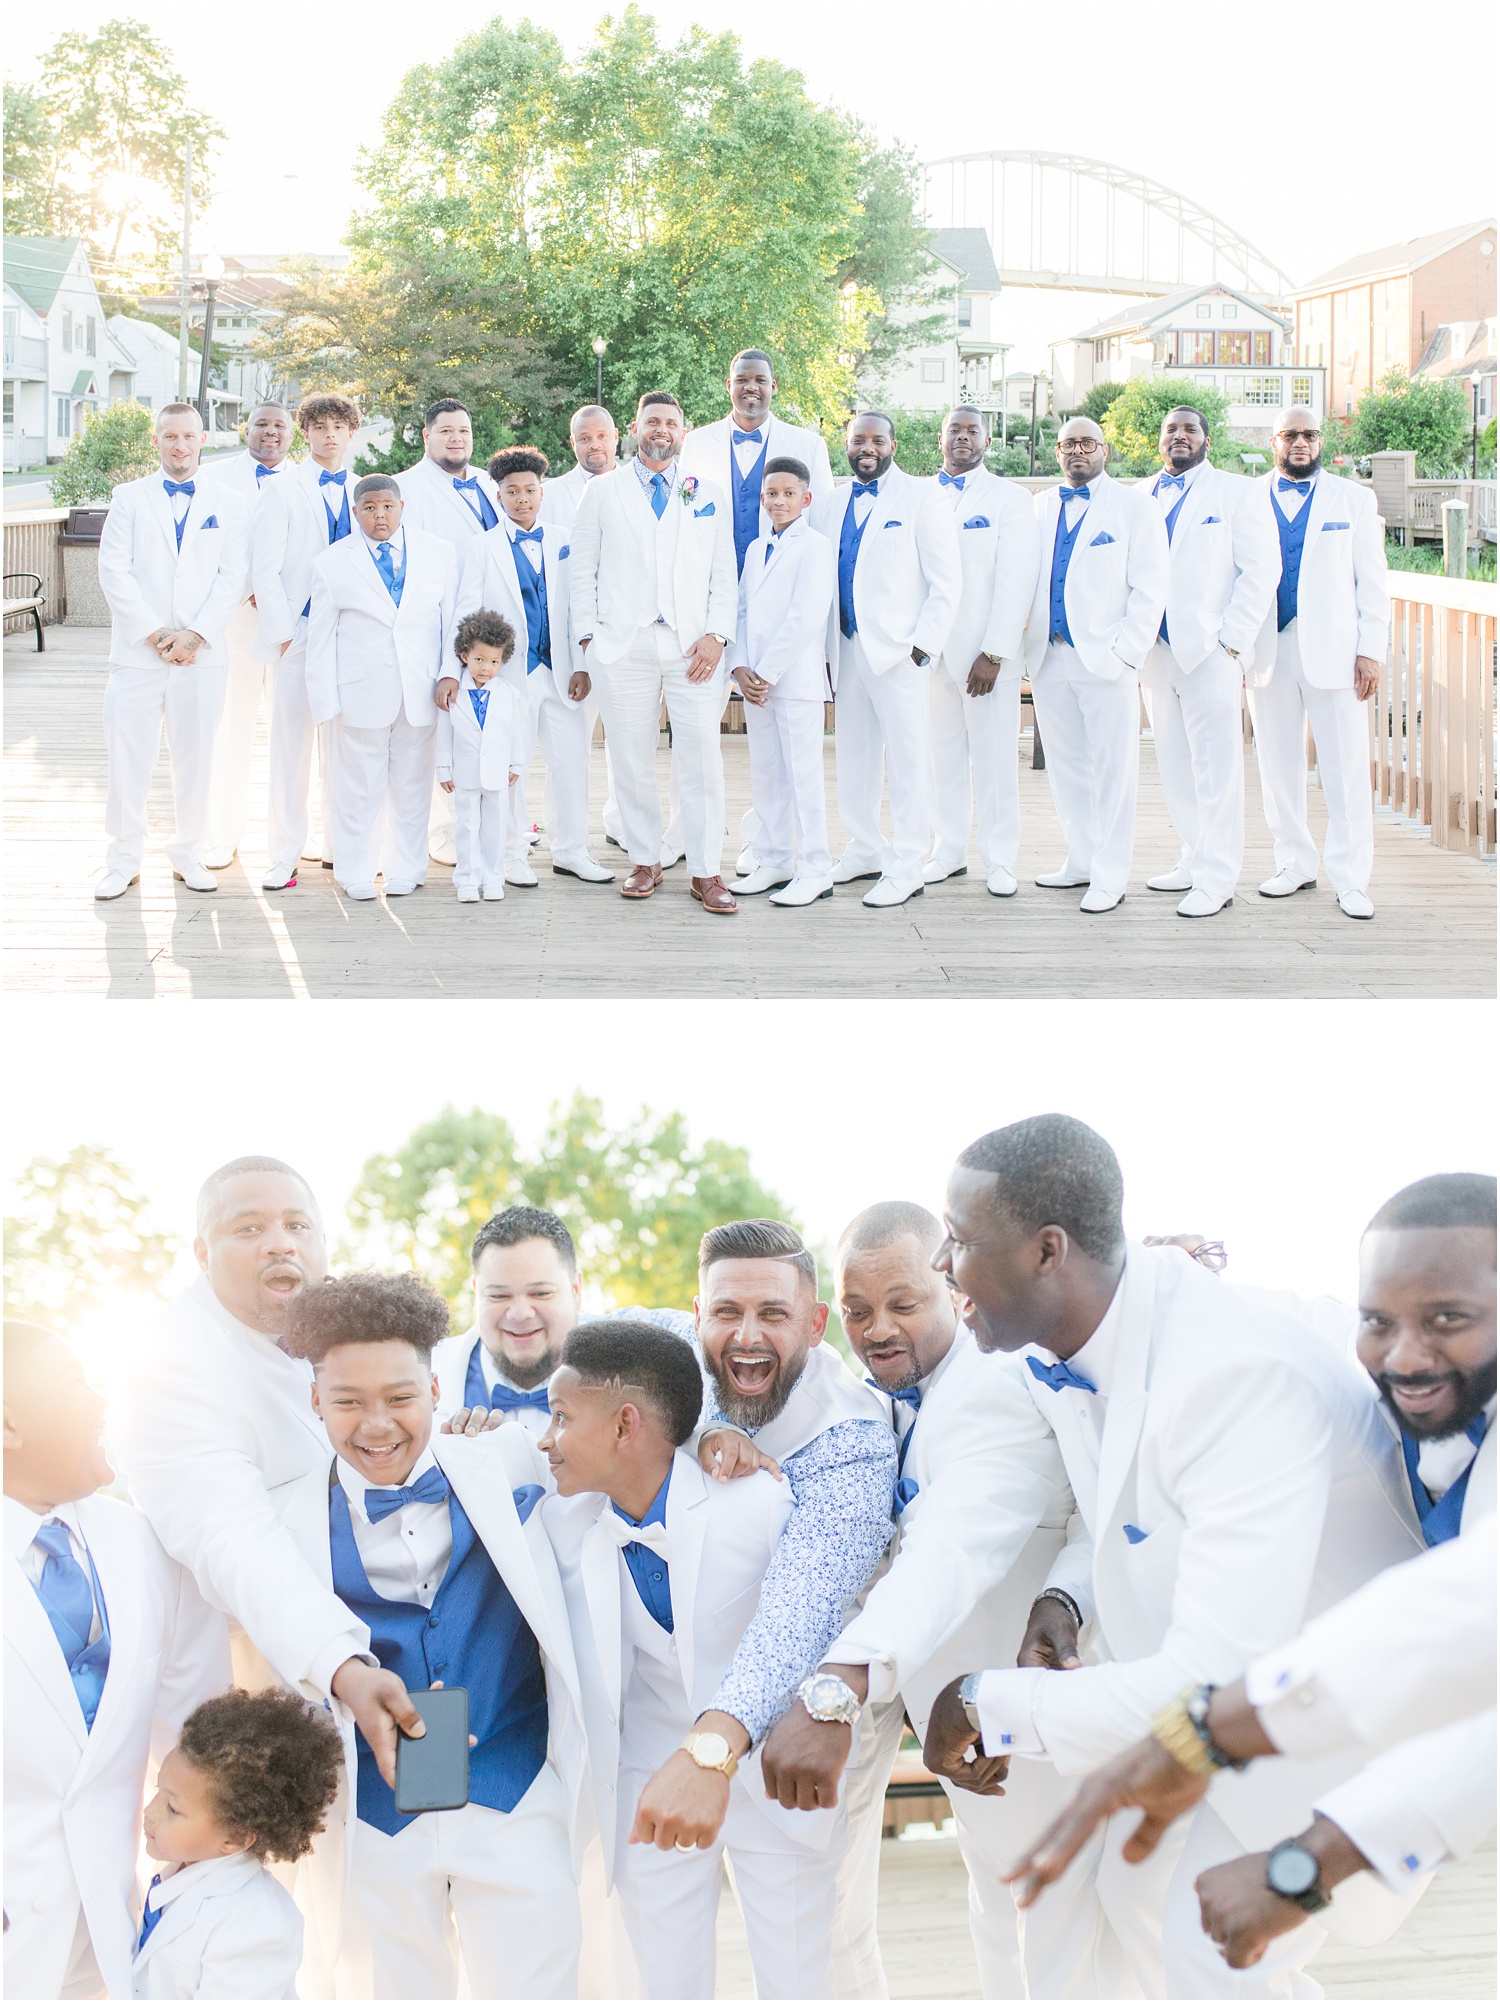 fun groomsmen photos in Chesapeake City, MD.